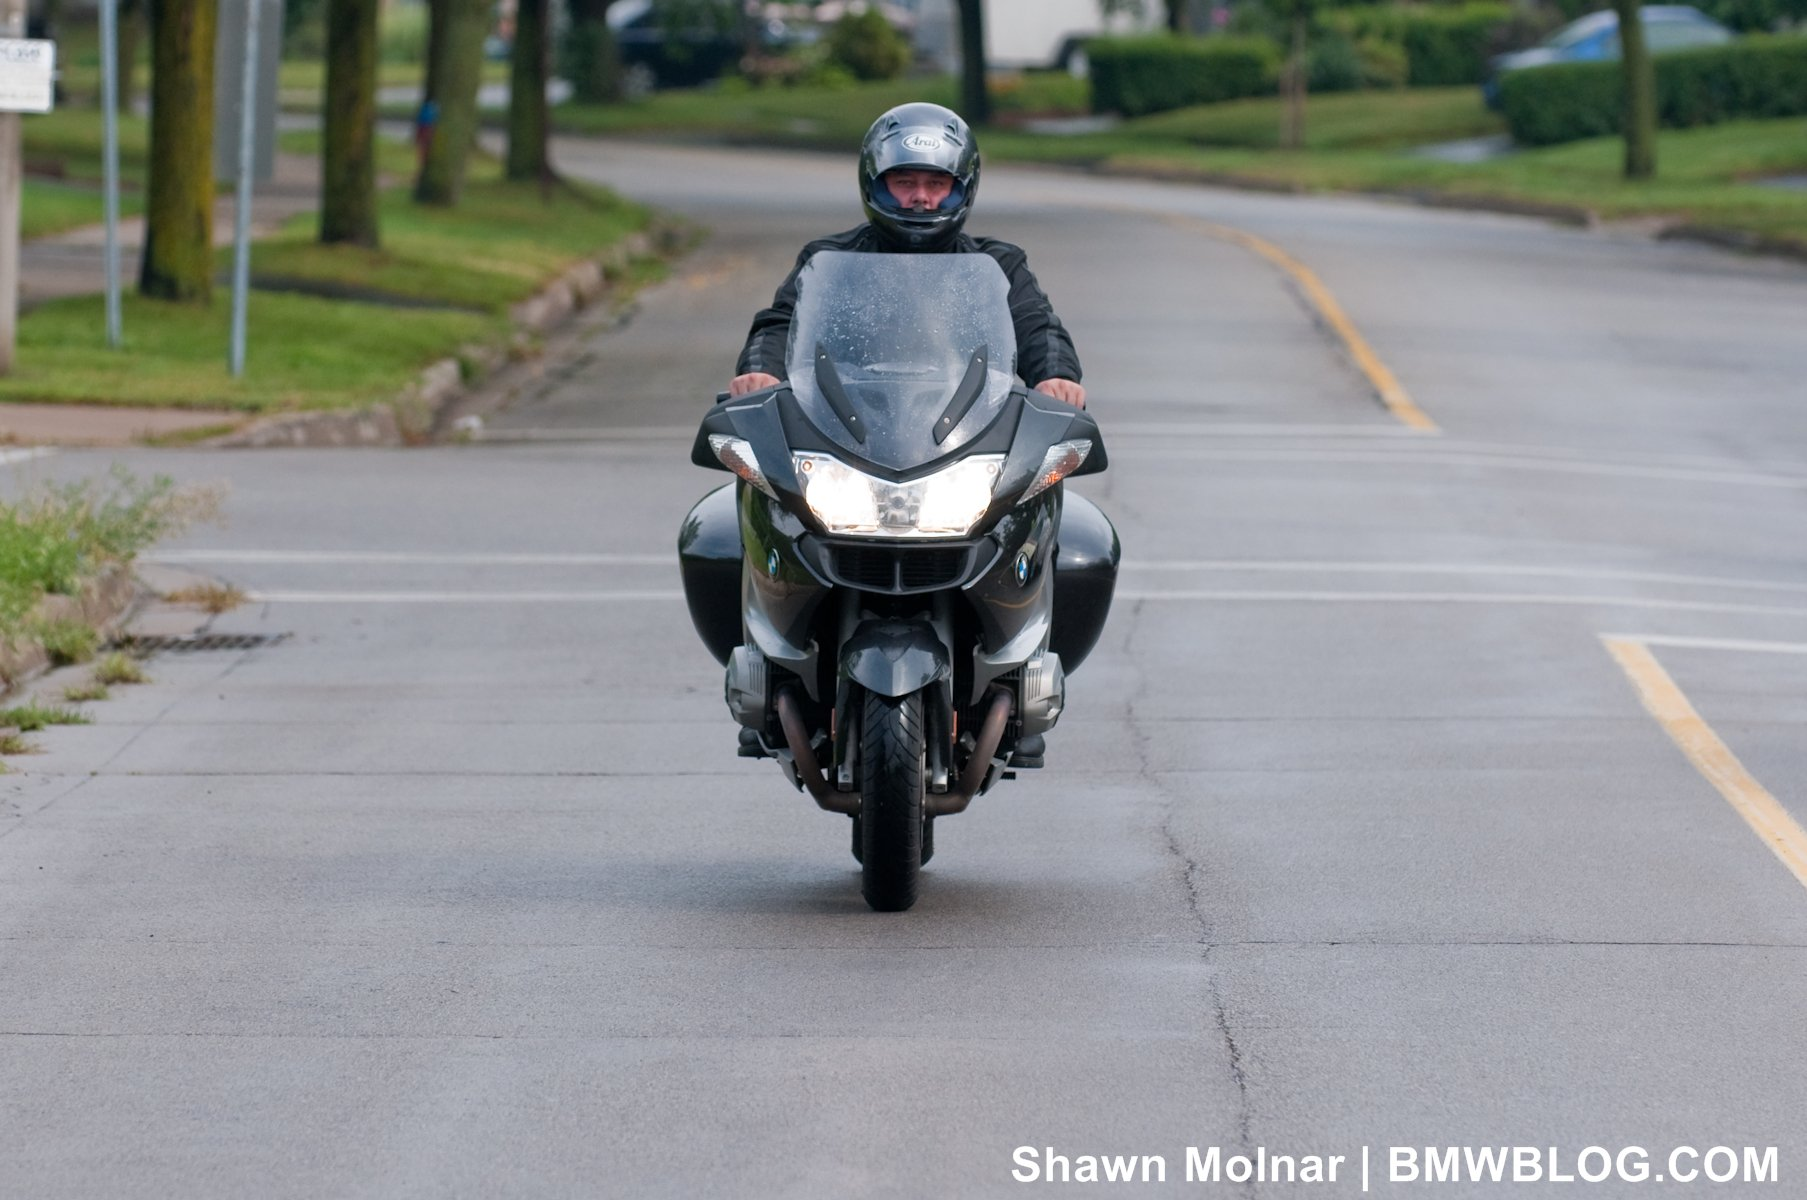 BMWBLOG Ride Review: 2011 R1200RT - The Well Rounded Ride